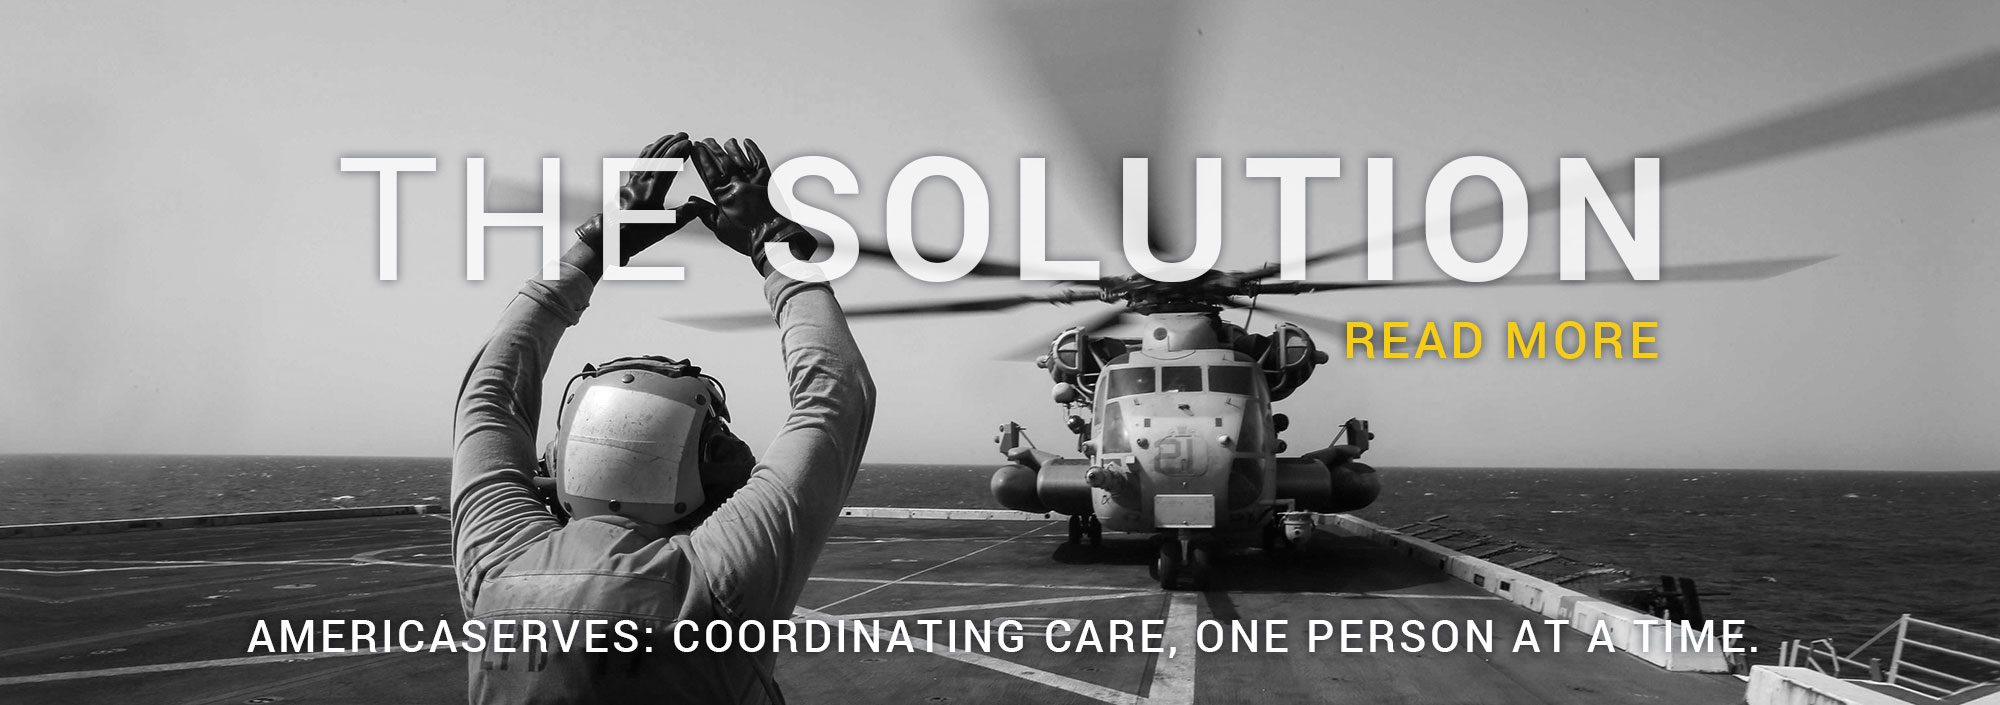 The Solution - coordinating care